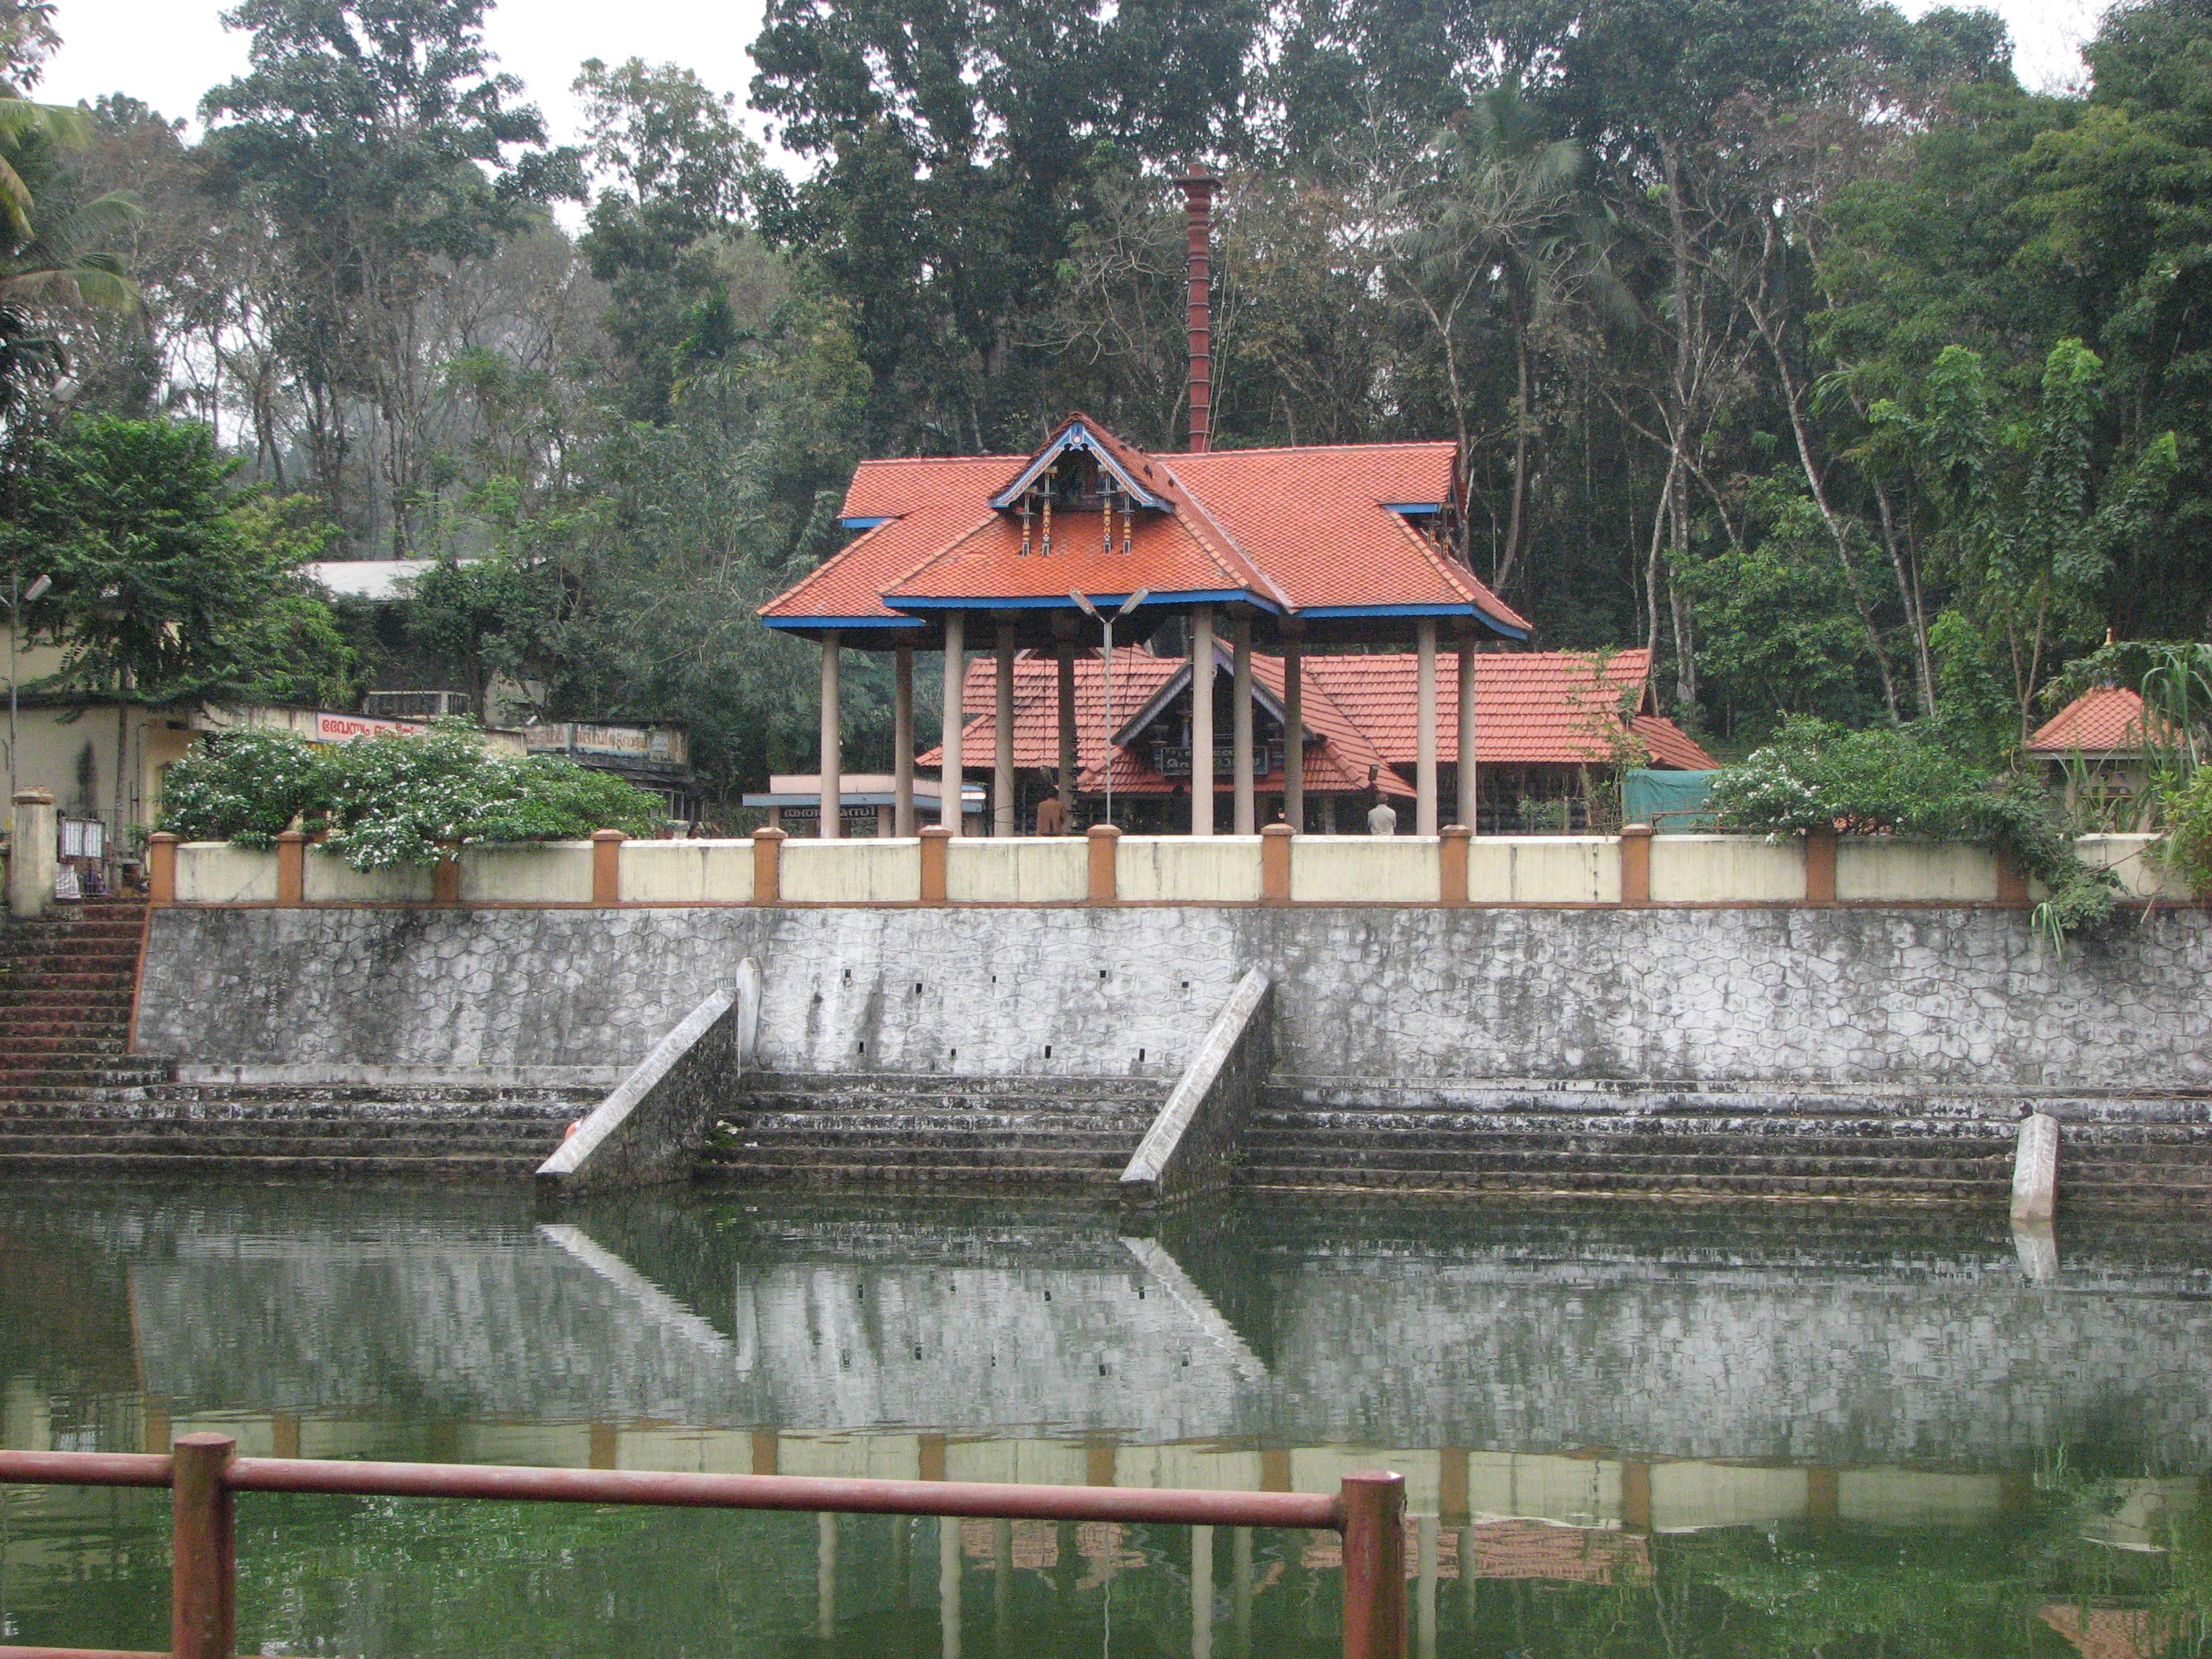 Cheruvally Devi Temple - Wikipedia